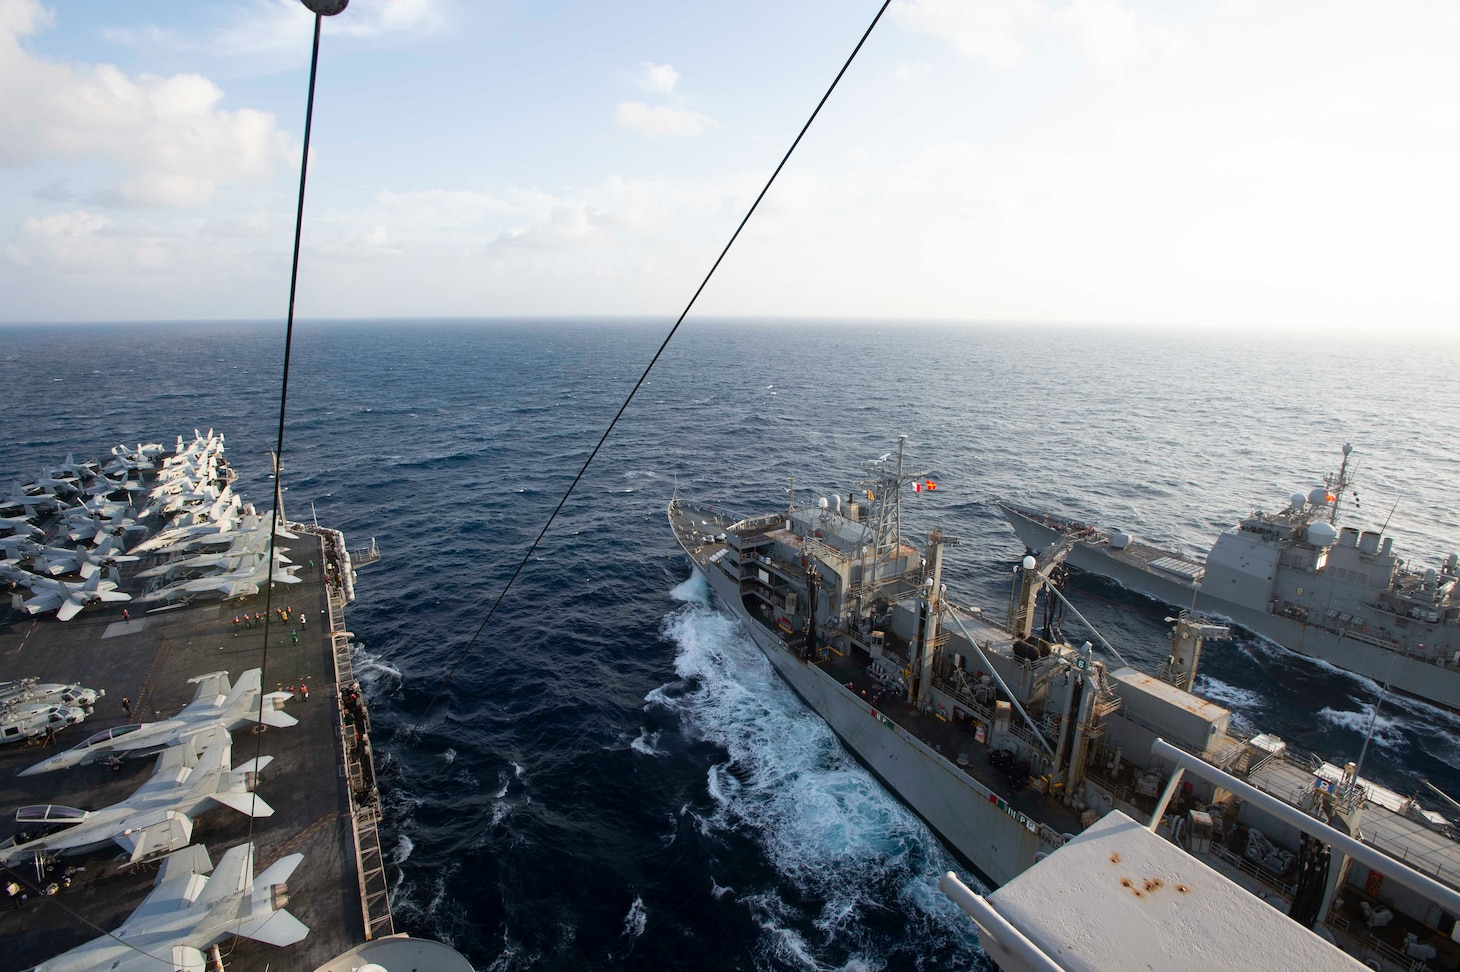 210307-N-YD547-2029 ATLANTIC OCEAN (March 7, 2021) The Nimitz-class aircraft carrier USS Dwight D. Eisenhower (CVN 69), left, conducts a replenishment-at-sea with the fast-combat support ship USNS Arctic (T-AOE 8), center, and the Ticonderoga-class guided-missile cruiser USS Monterey (CG 61), in the Atlantic Ocean, March 7, 2021. The IKE Carrier Strike Group is on a scheduled deployment in the U.S. Sixth Fleet area of operations in support of U.S. national interests and security in Europe and Africa. (U.S. Navy photo by Mass Communication Specialist Seaman Trent P. Hawkins/Released)